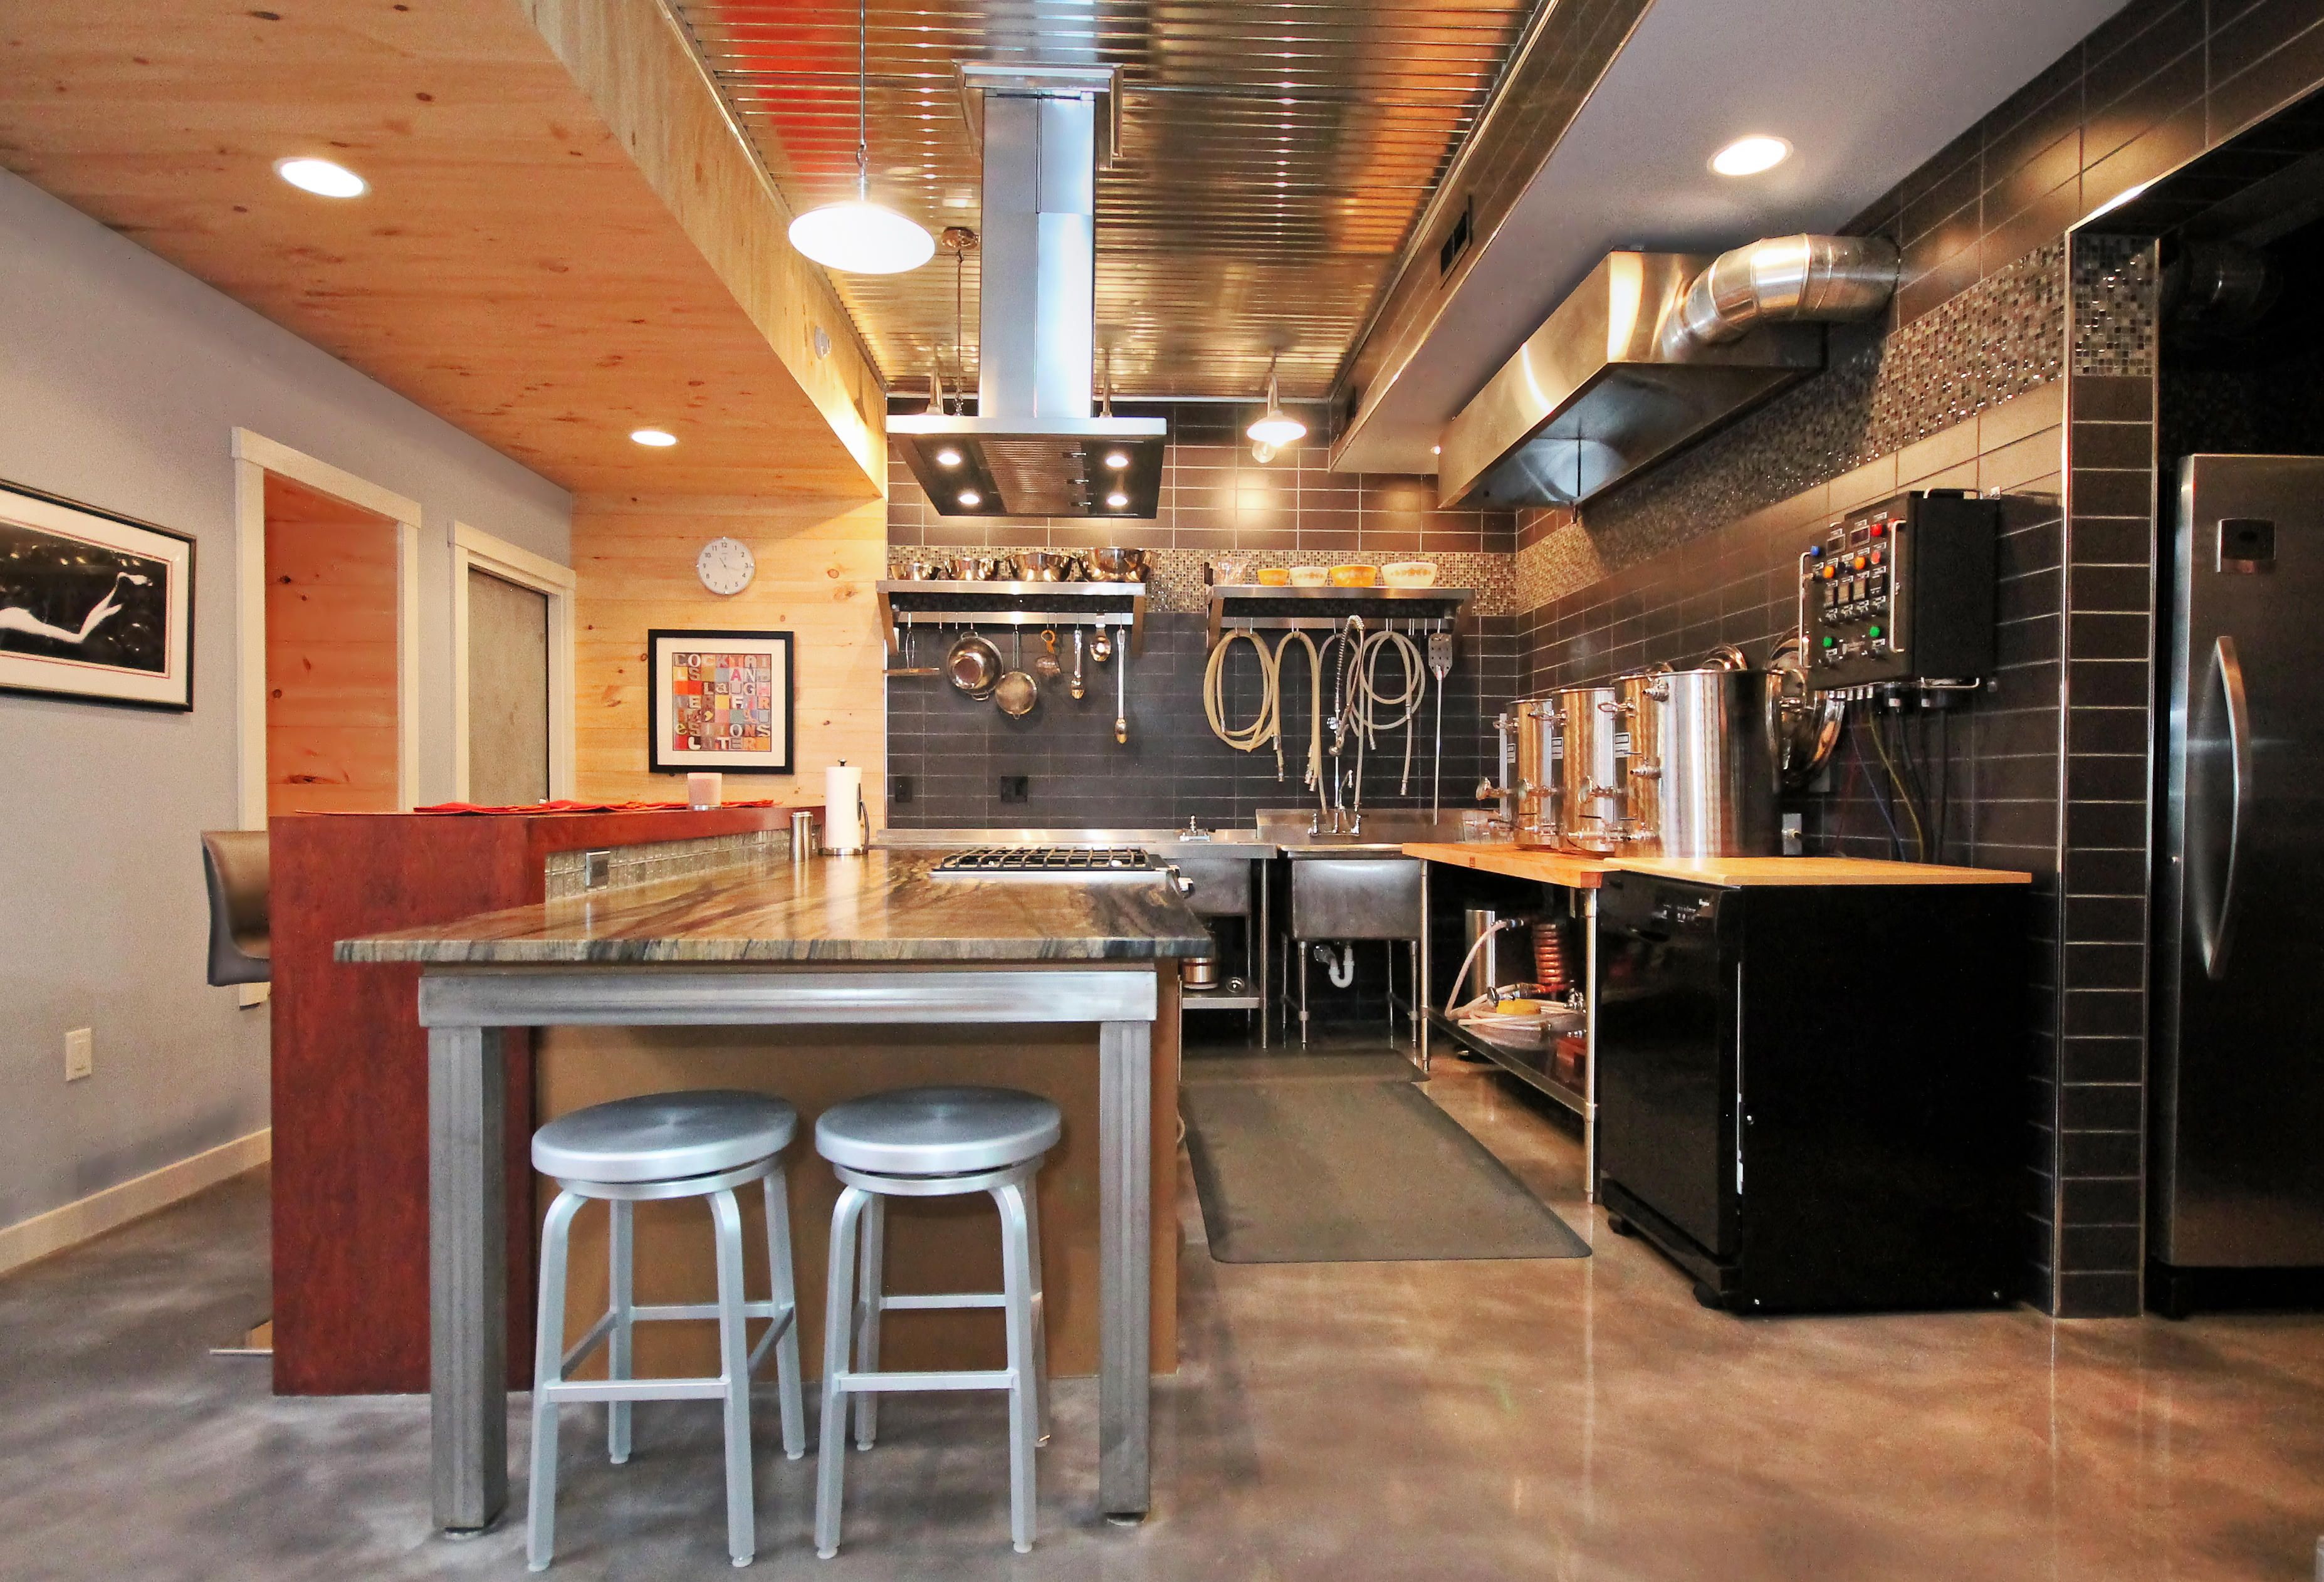 Best Kitchen Gallery: Basement Brewery Google Search Brew Shed Pinterest Basements of Homebrew Setup Ideas on rachelxblog.com